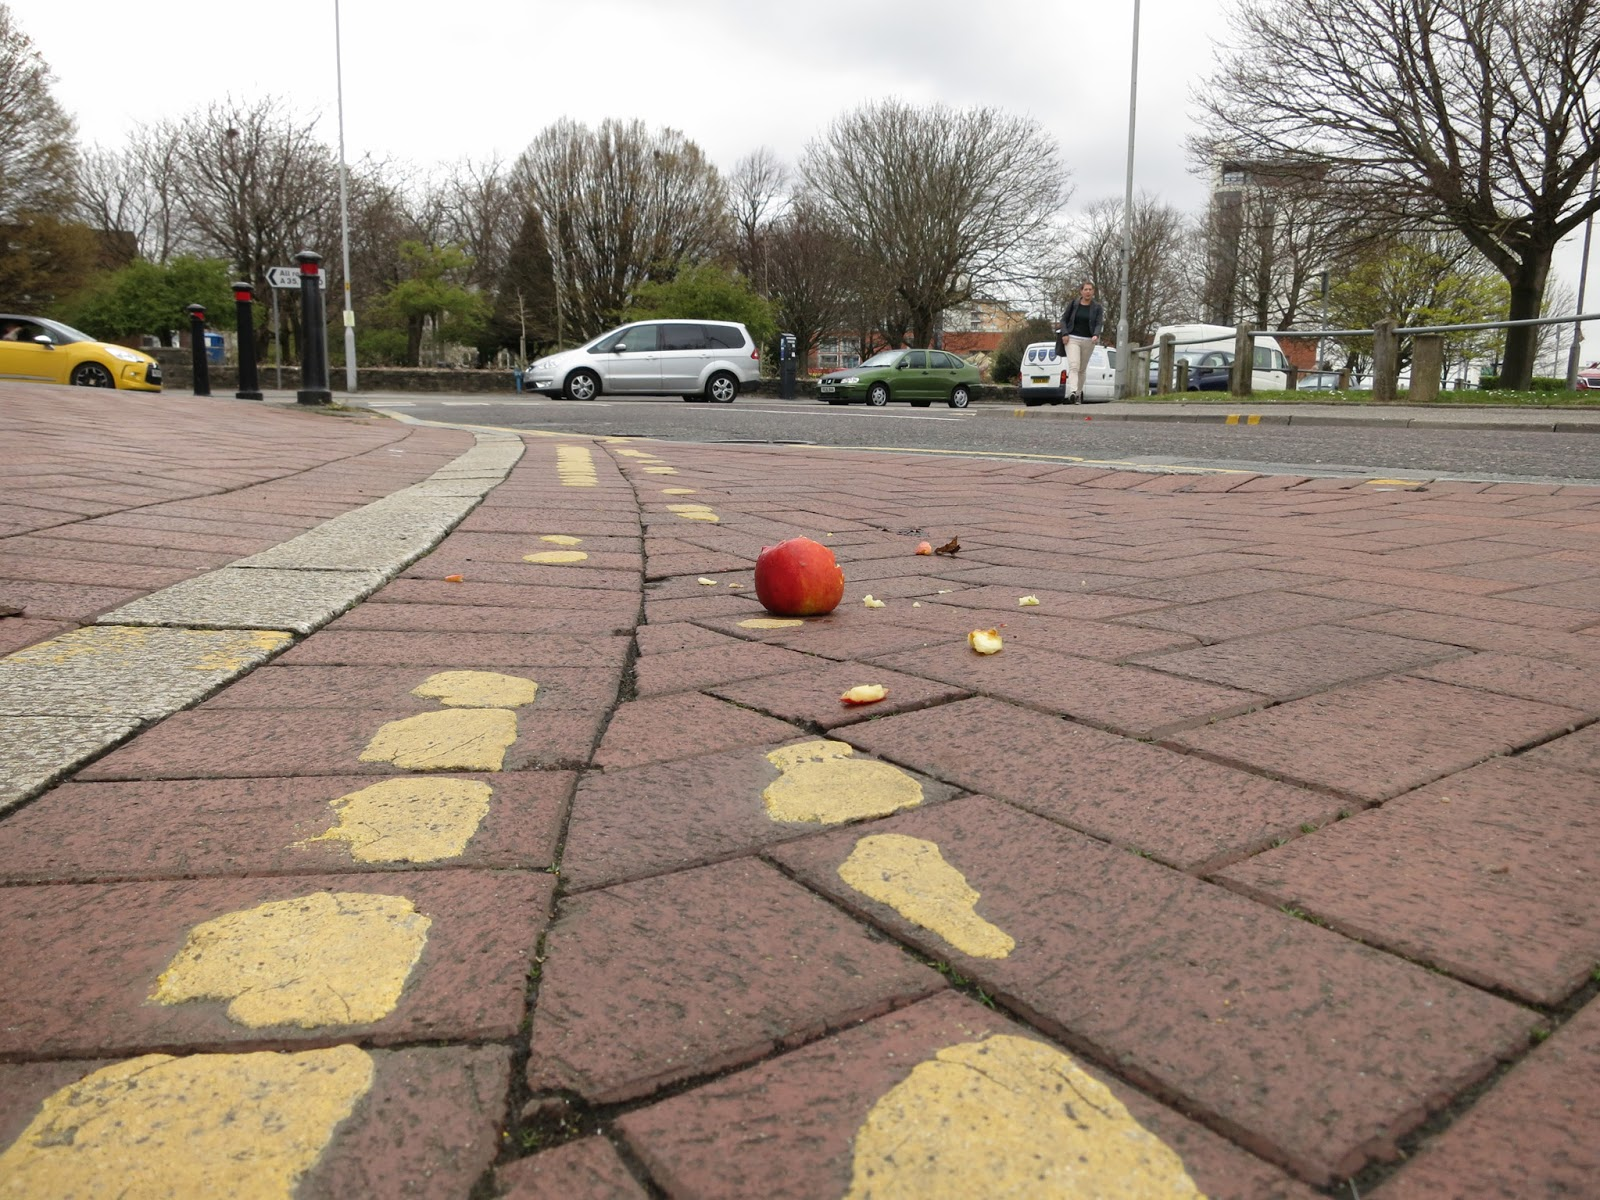 Broken apple on brick road with yellow lines and cars crossing.